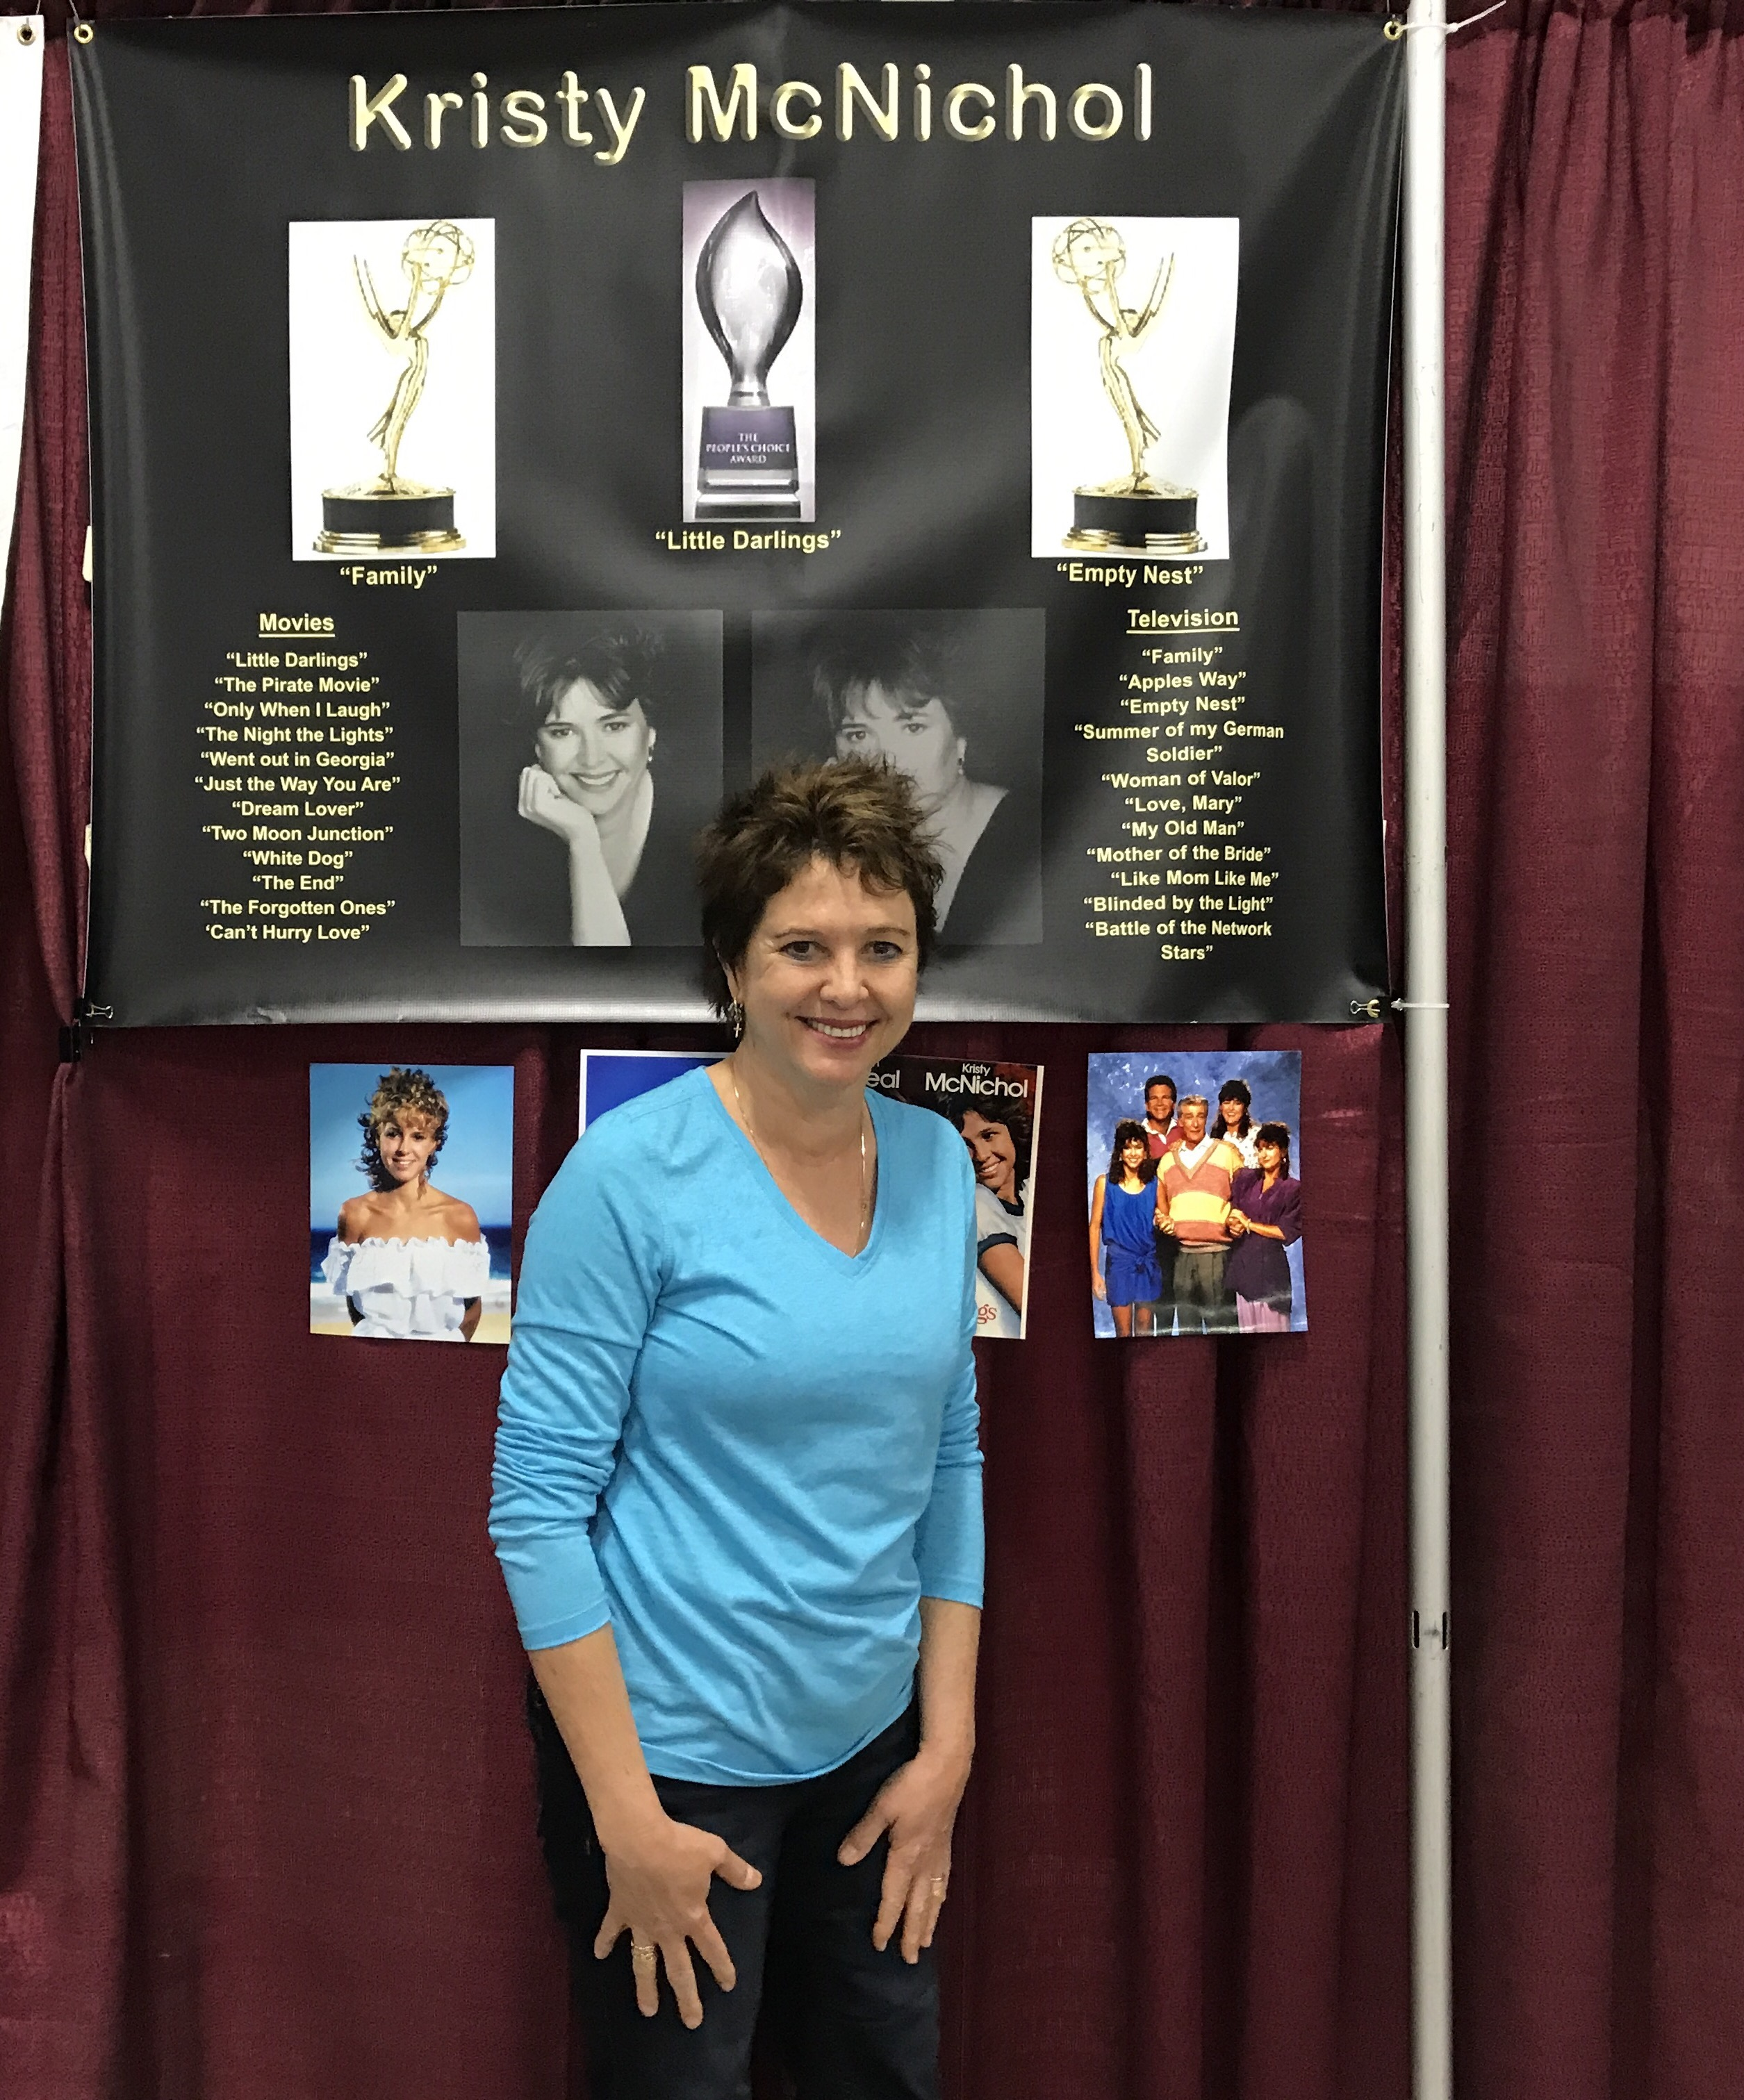 Kristy McNichol (Can't Hurry Love).